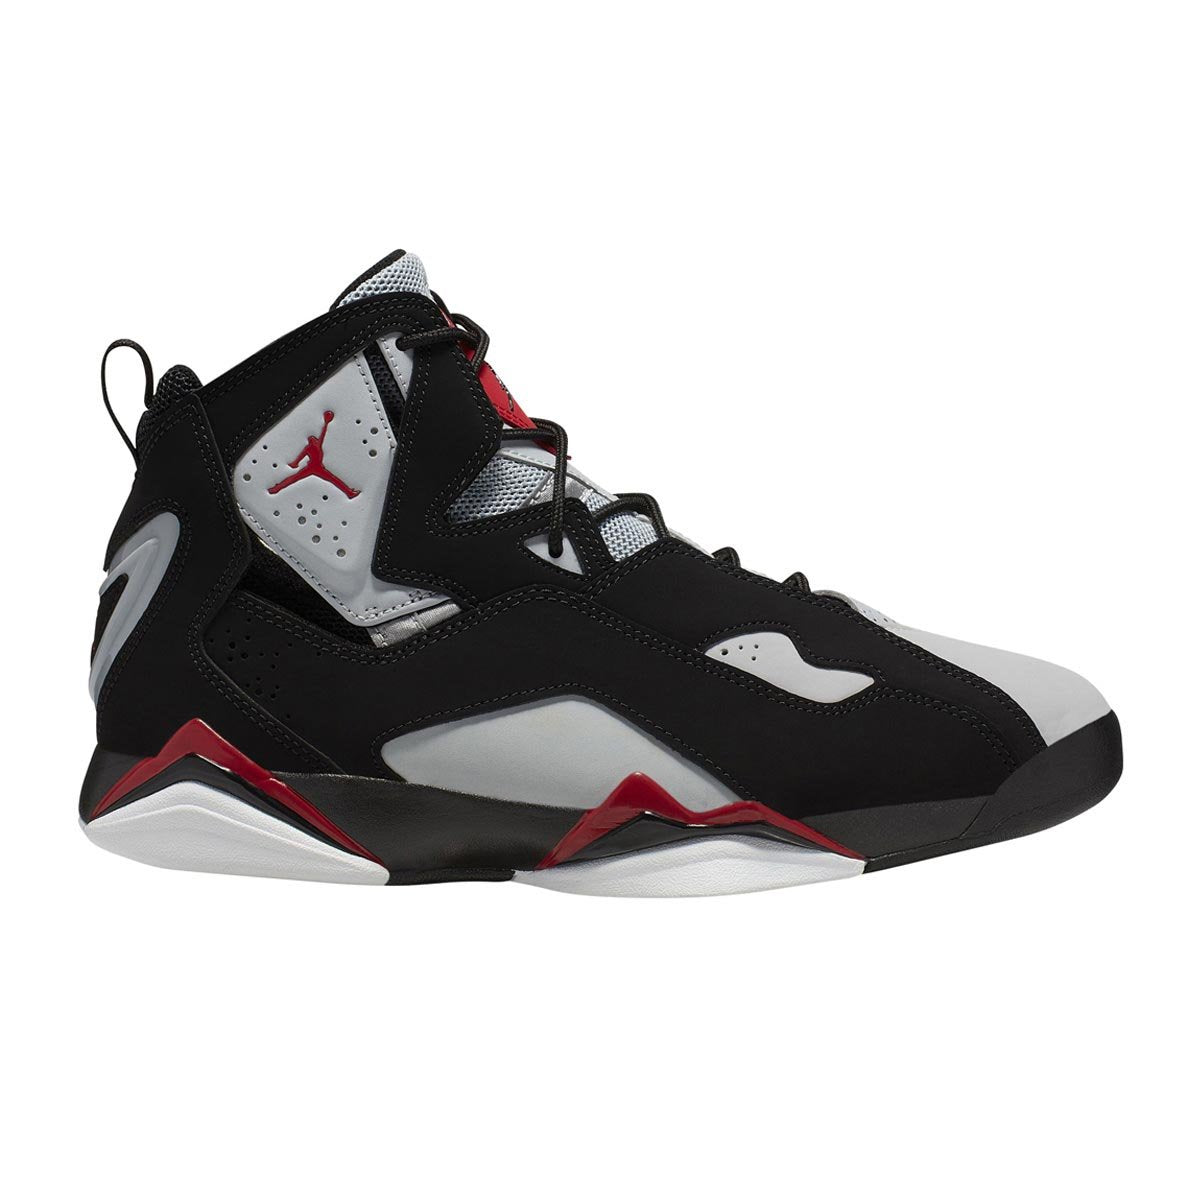 Men's Jordan True Flight Shoe